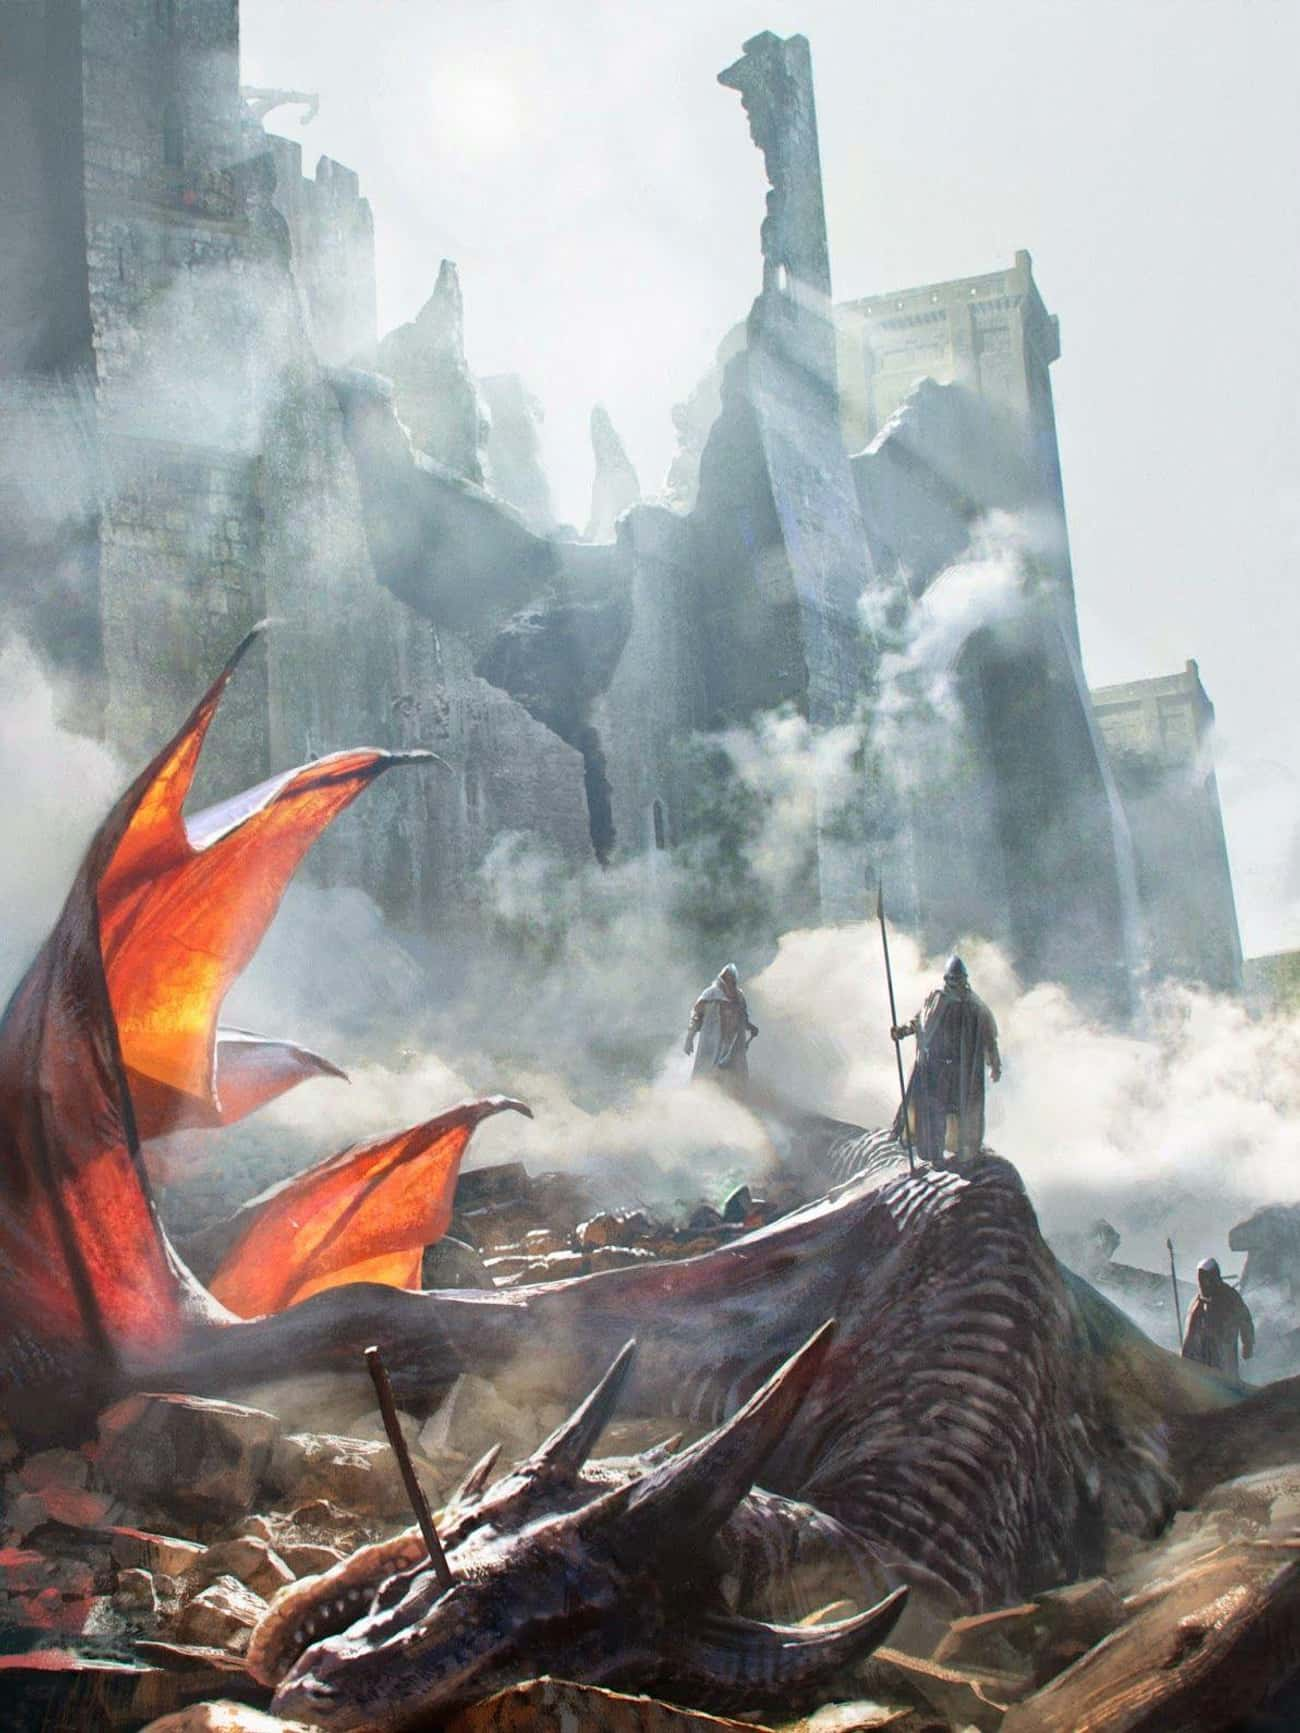 The Targaryen Dragons Started  is listed (or ranked) 3 on the list The Ludicrously Brutal Story Of House Targaryens' Rise And Fall